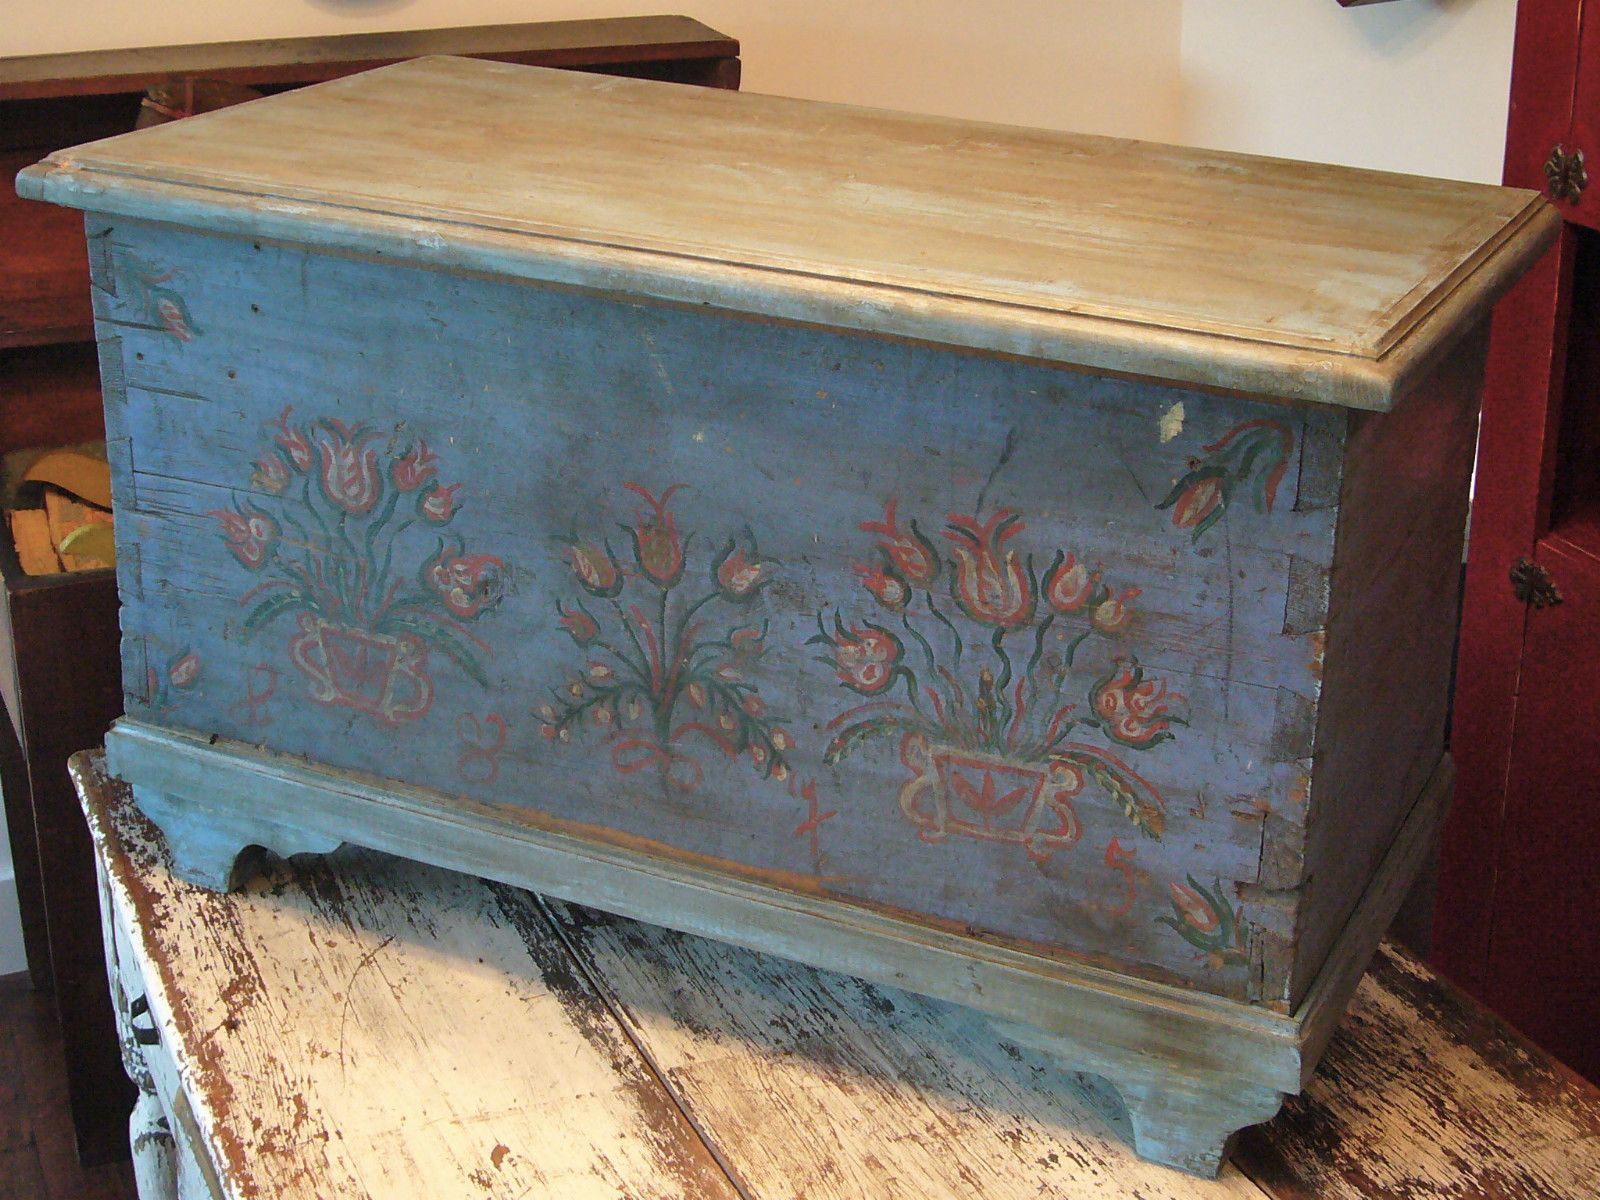 Uncategorized Chest Trunk Furniture antique hand painted blue 1800s dovetailed folk art blanket chest trunk from americas place ebay